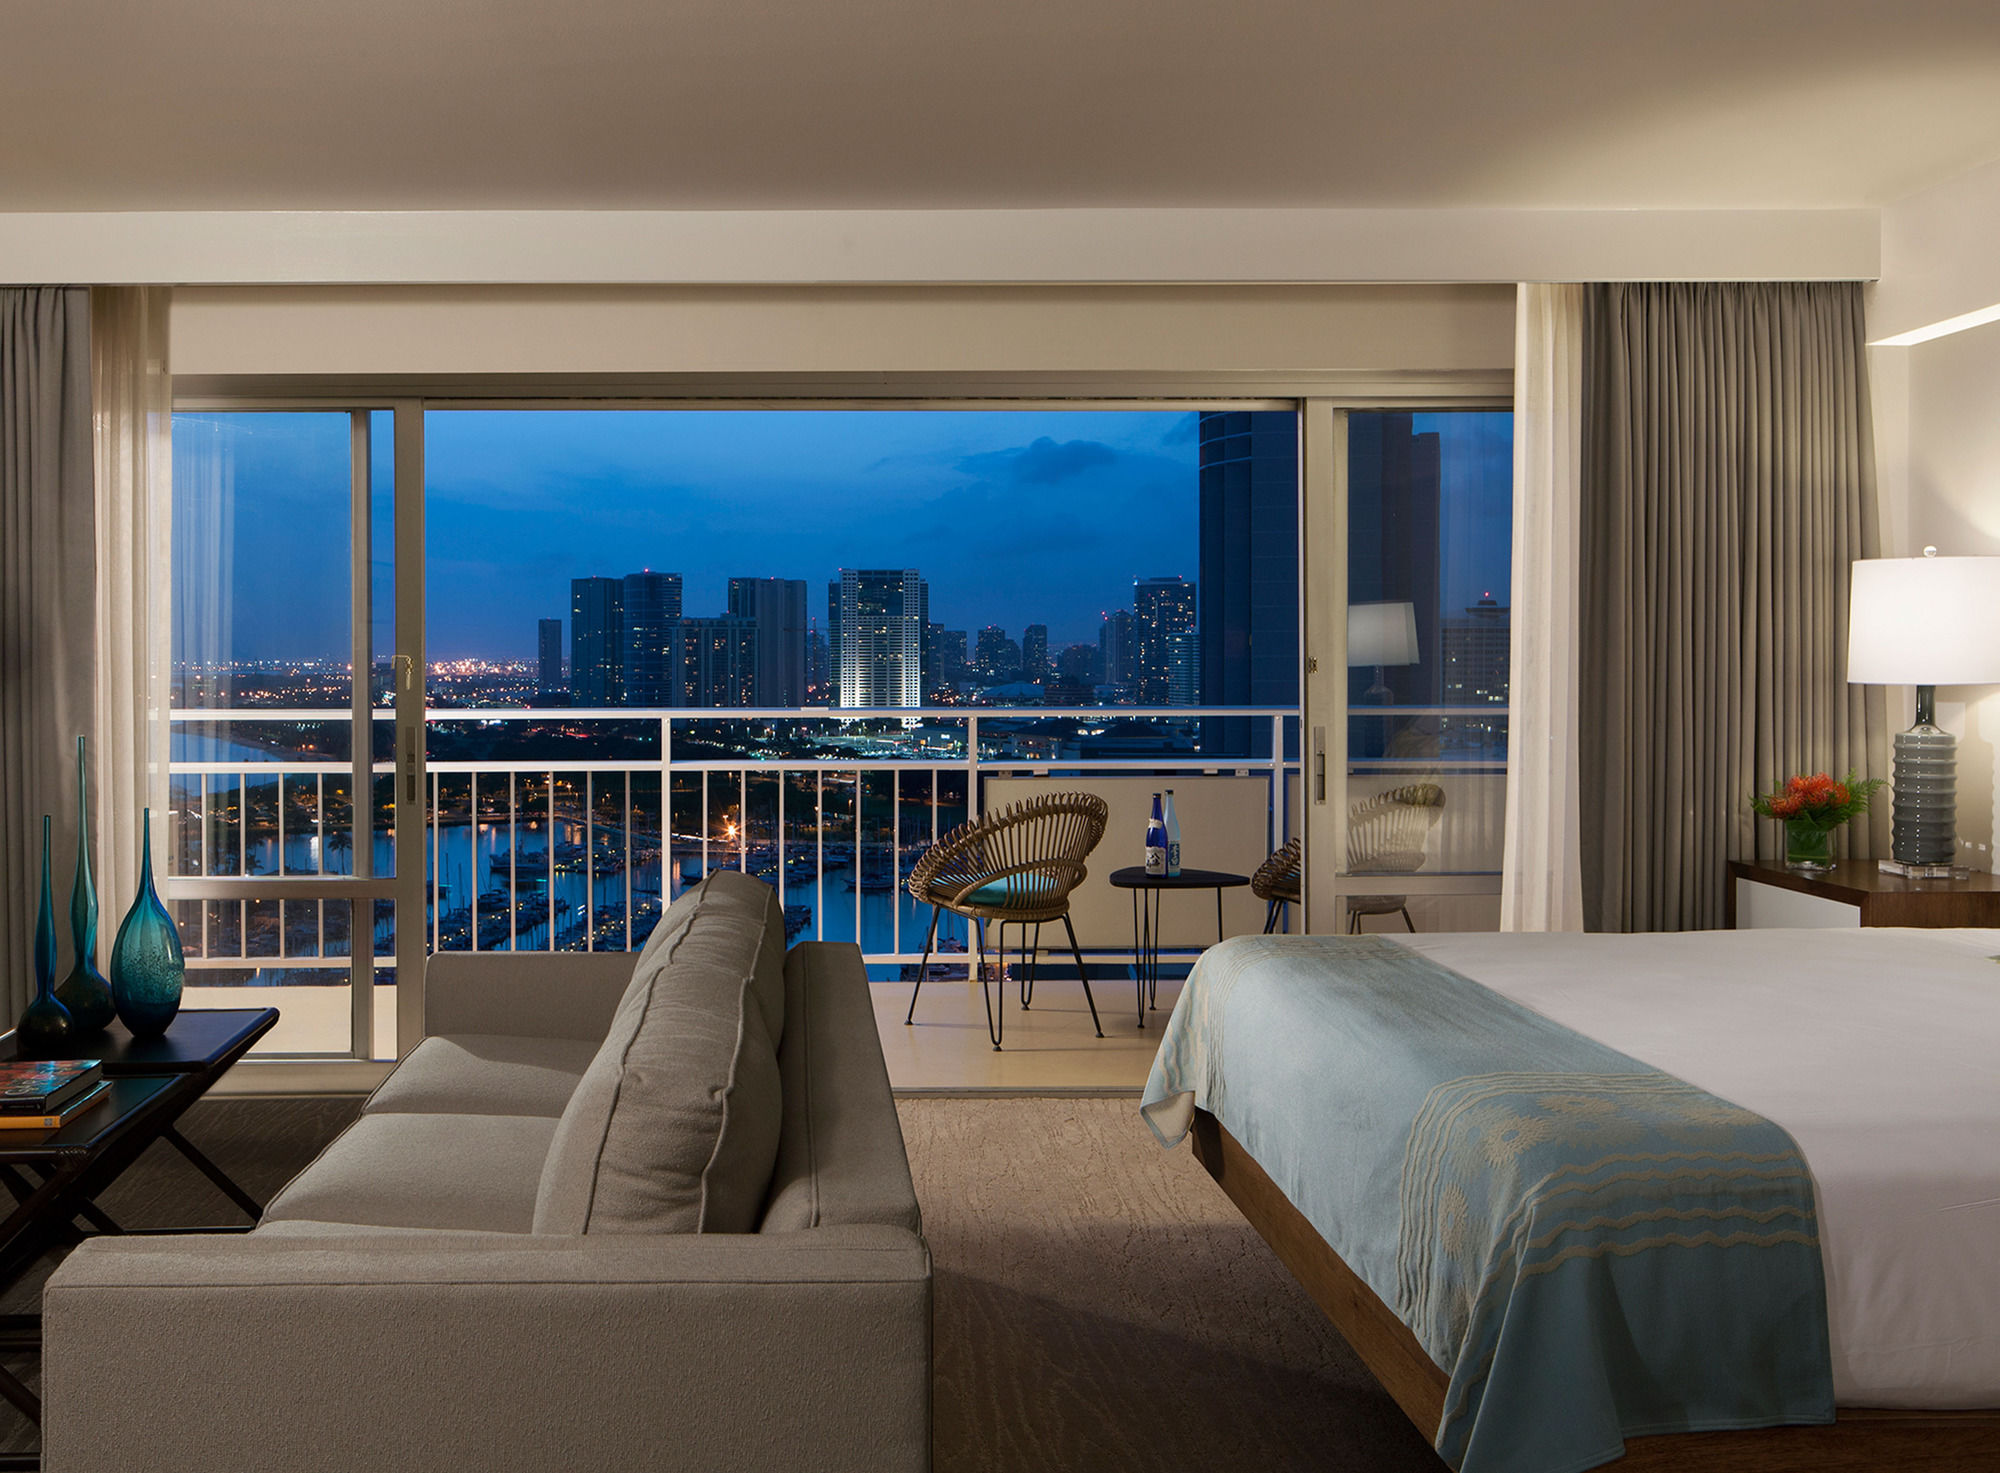 Discount Coupon for Ilikai Hotel & Luxury Suites in Honolulu, Hawaii - Save Money!